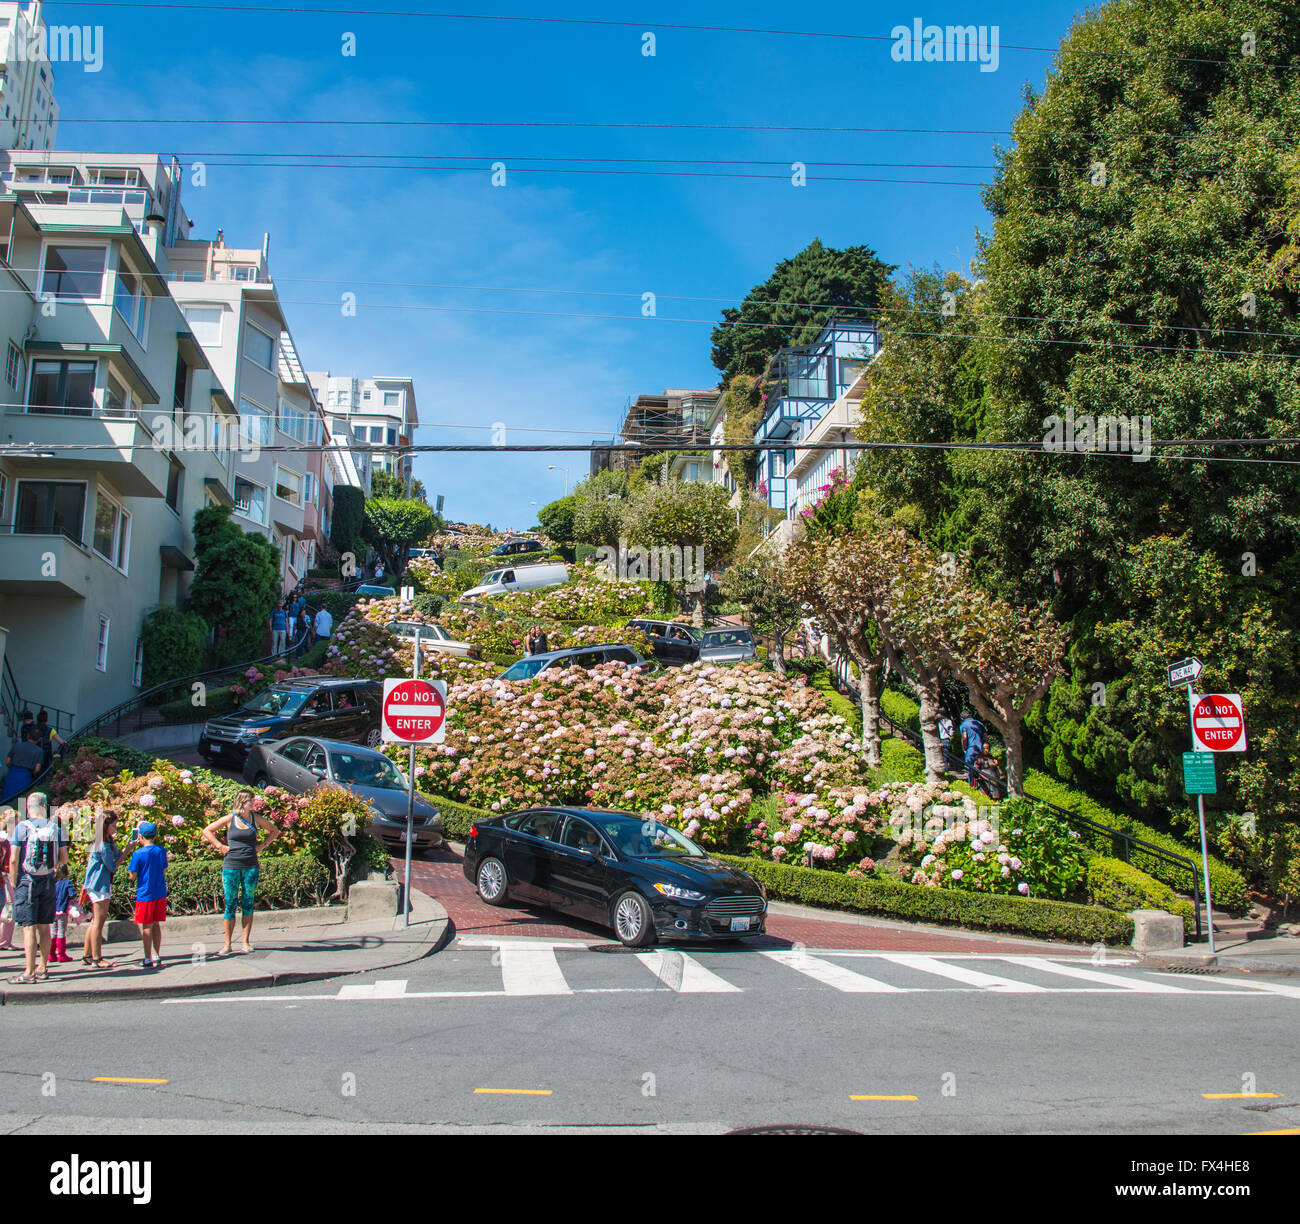 Cars meander in Lombard Street, San Francisco, California, USA - Stock Image